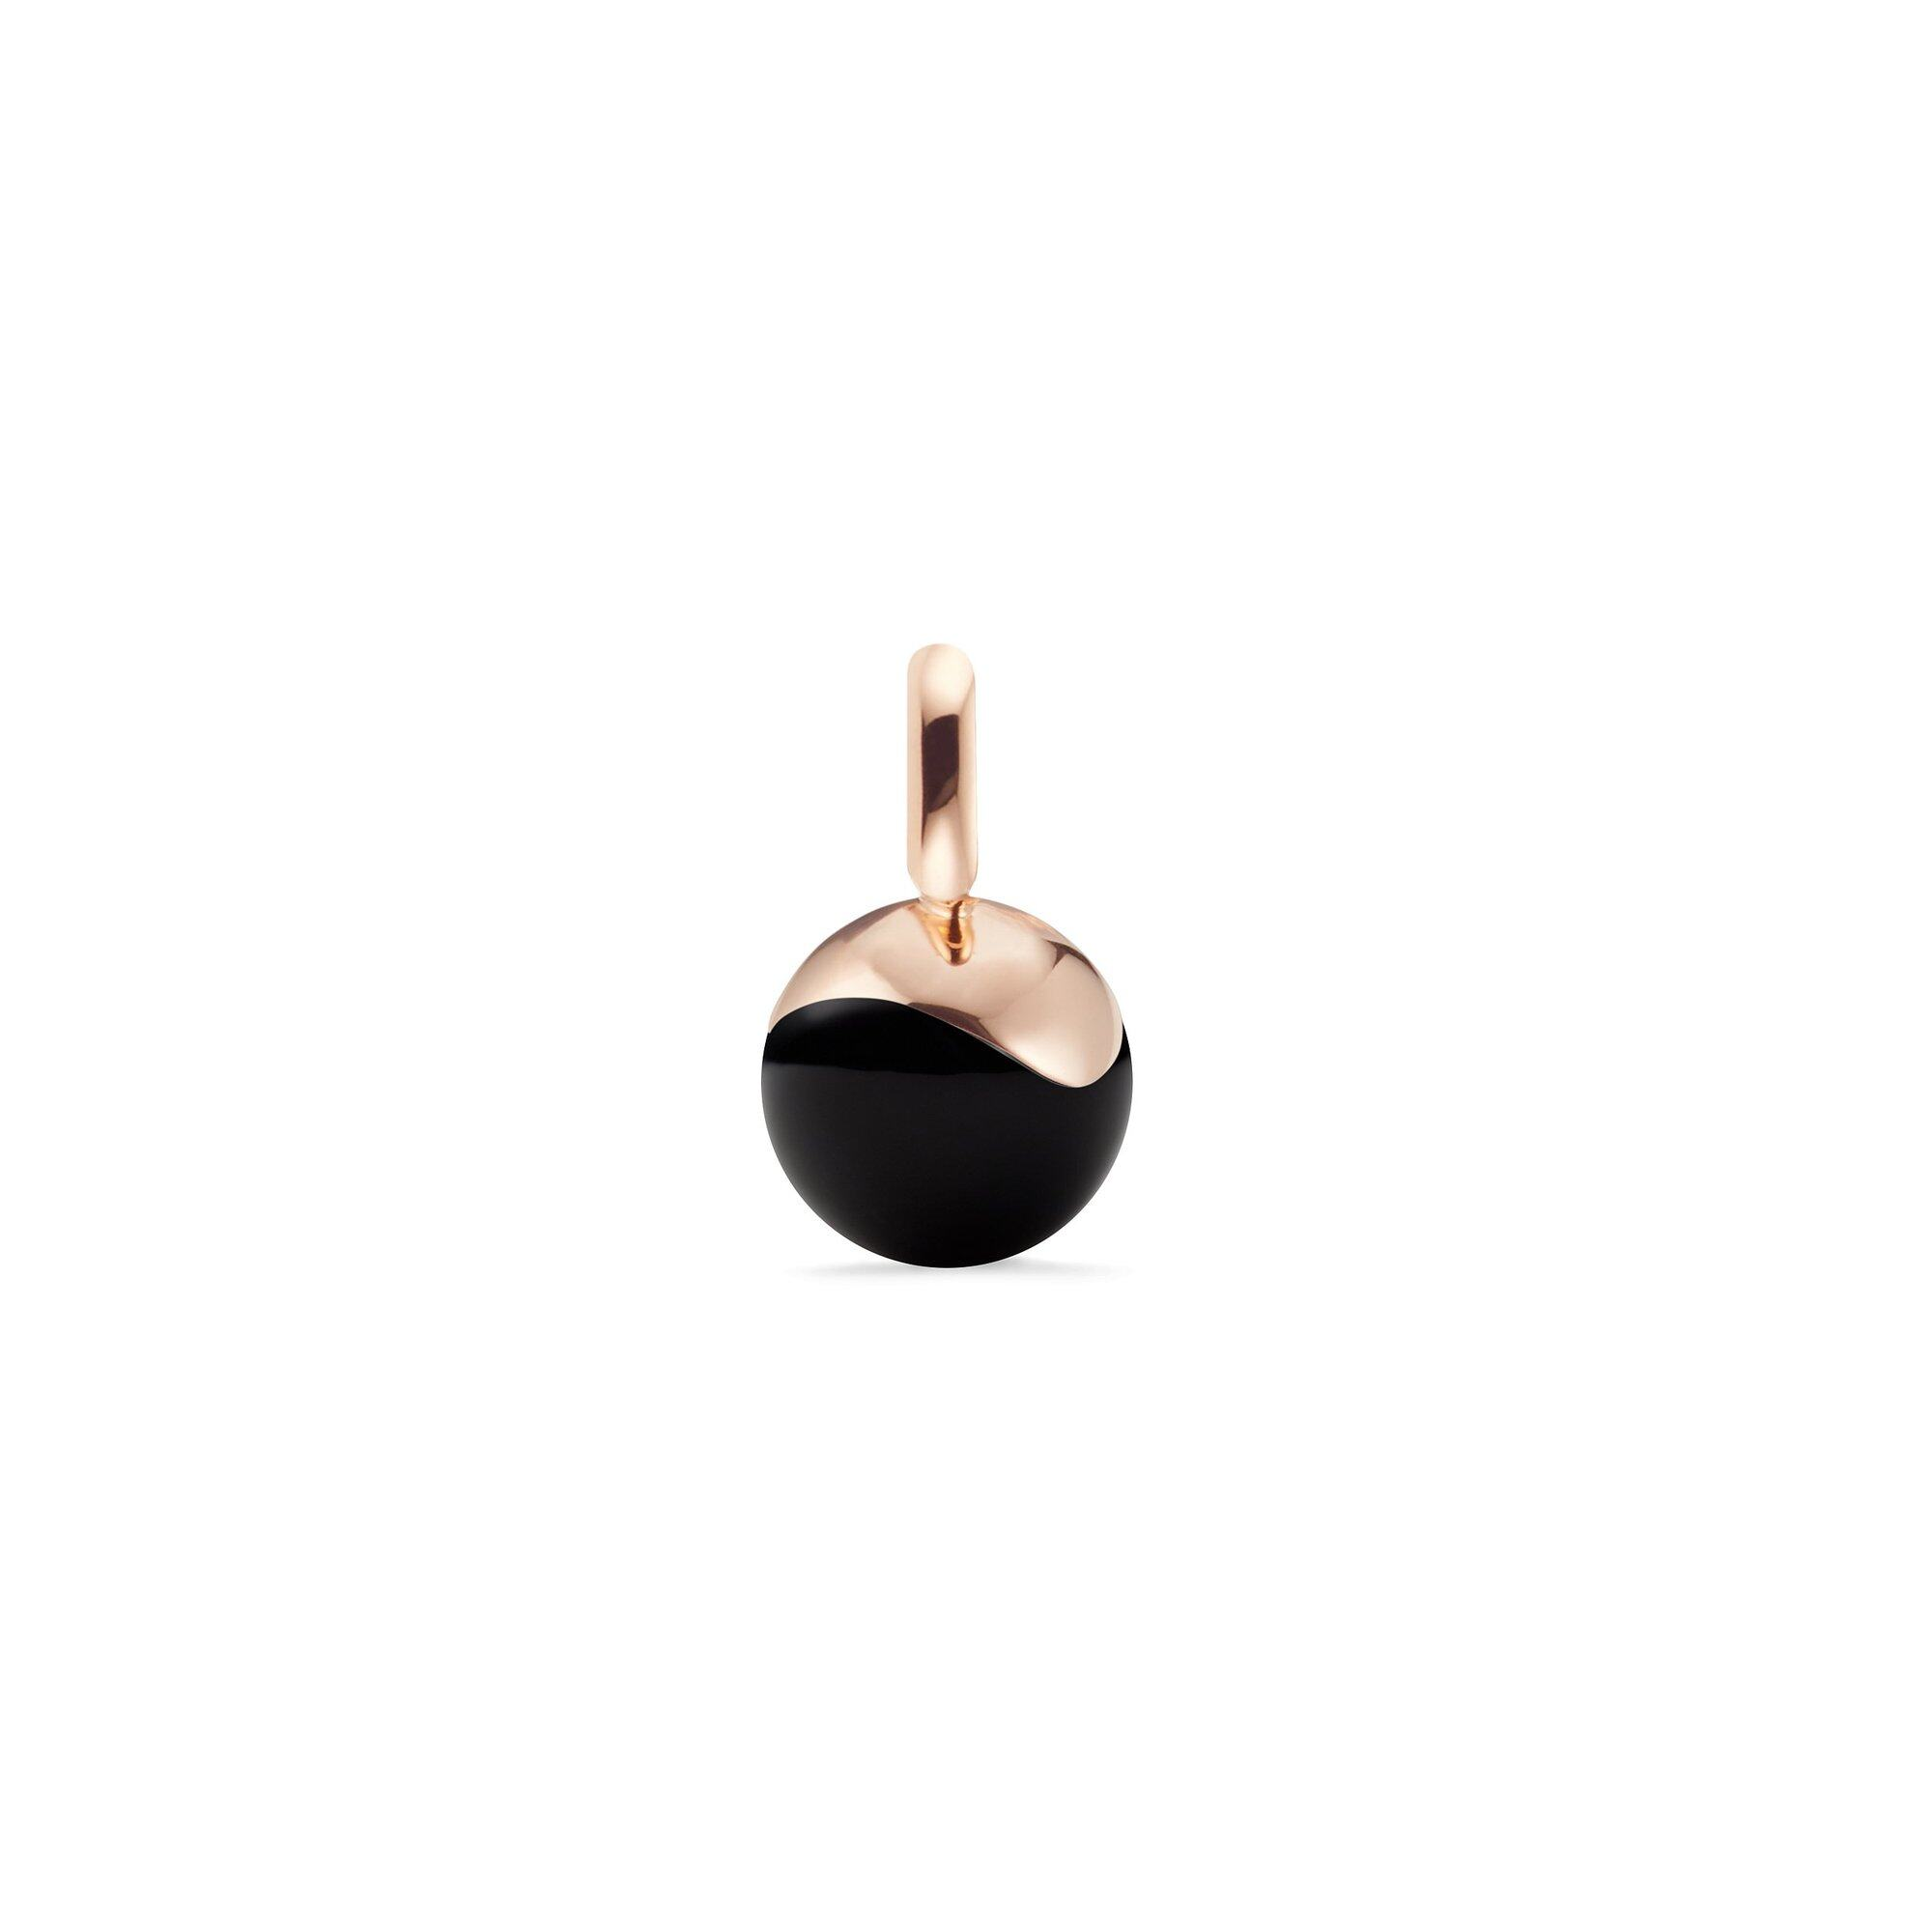 AURA Small Sphere Charm